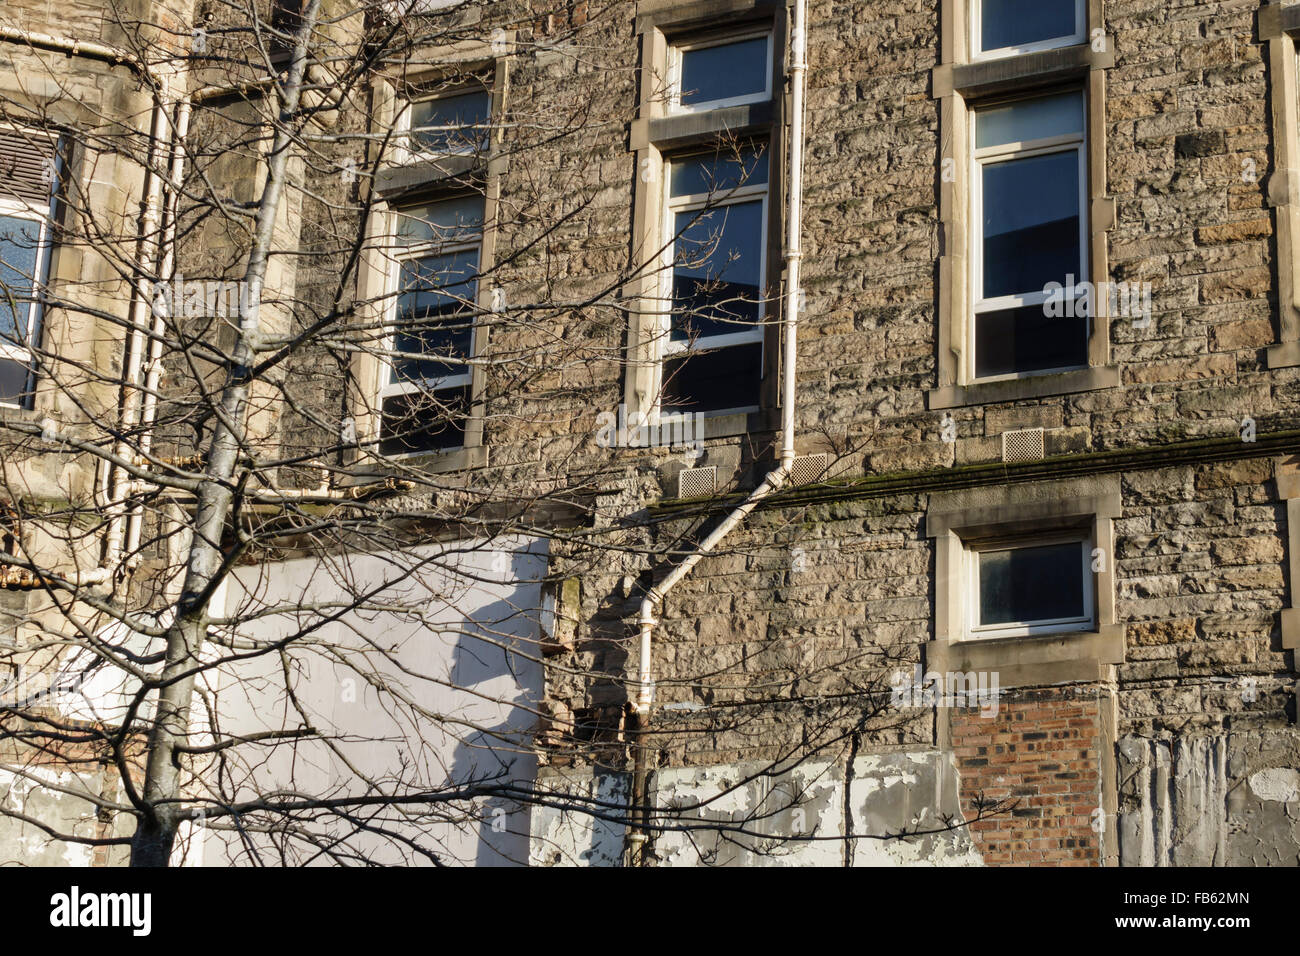 Quartermile, Lauriston, Edinburgh centre - redevelopment of old Royal Infirmary as luxury housing. Work in progress. - Stock Image